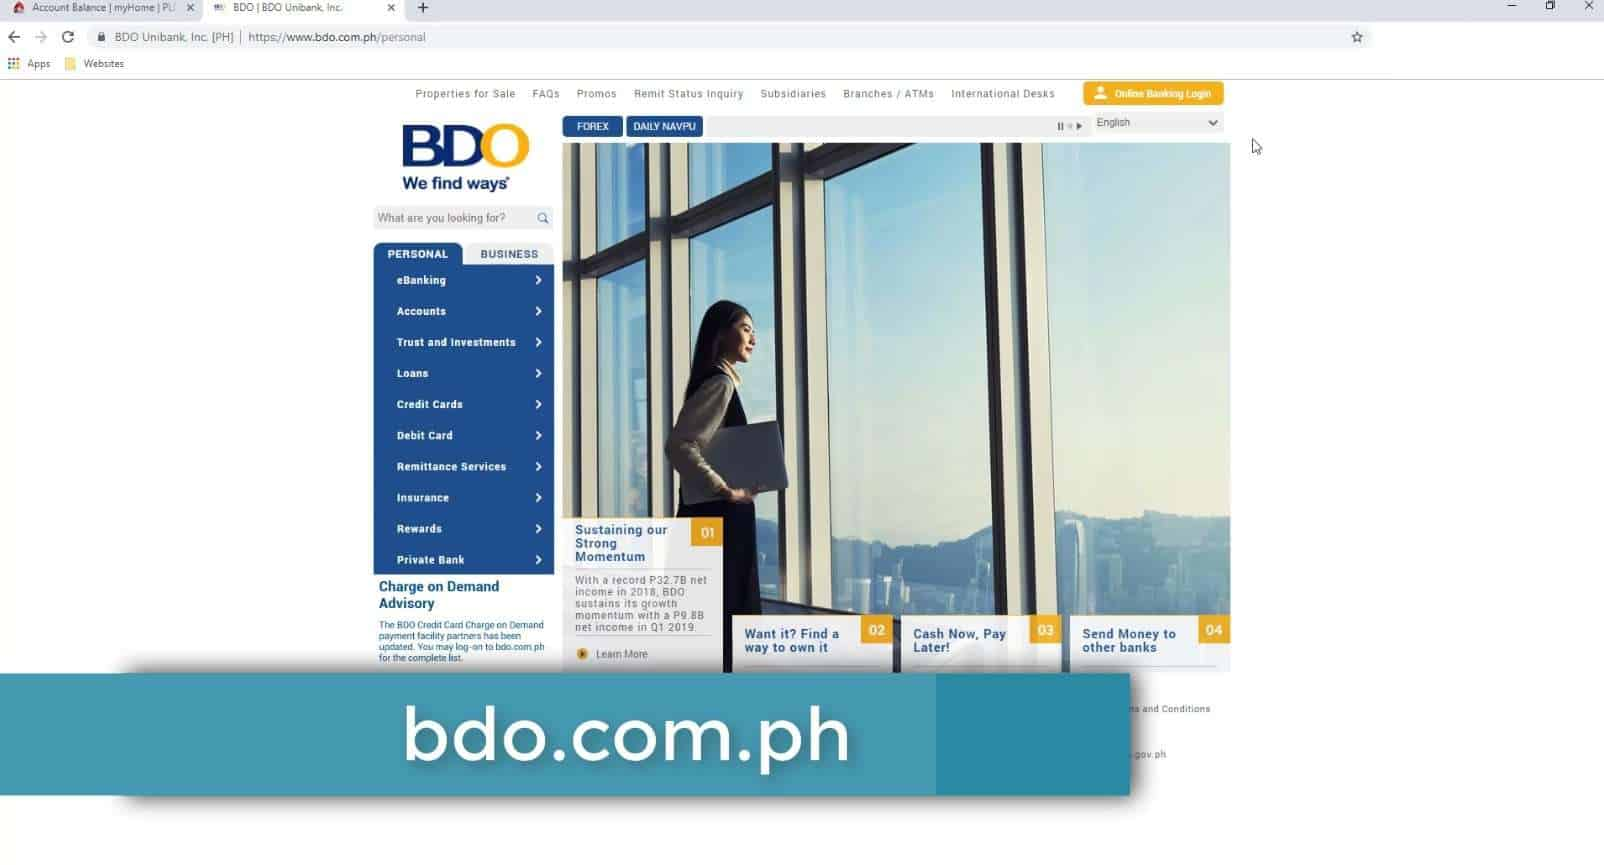 PLDT Online Payment BDO: How to Enroll and Pay PLDT Bills in BDO